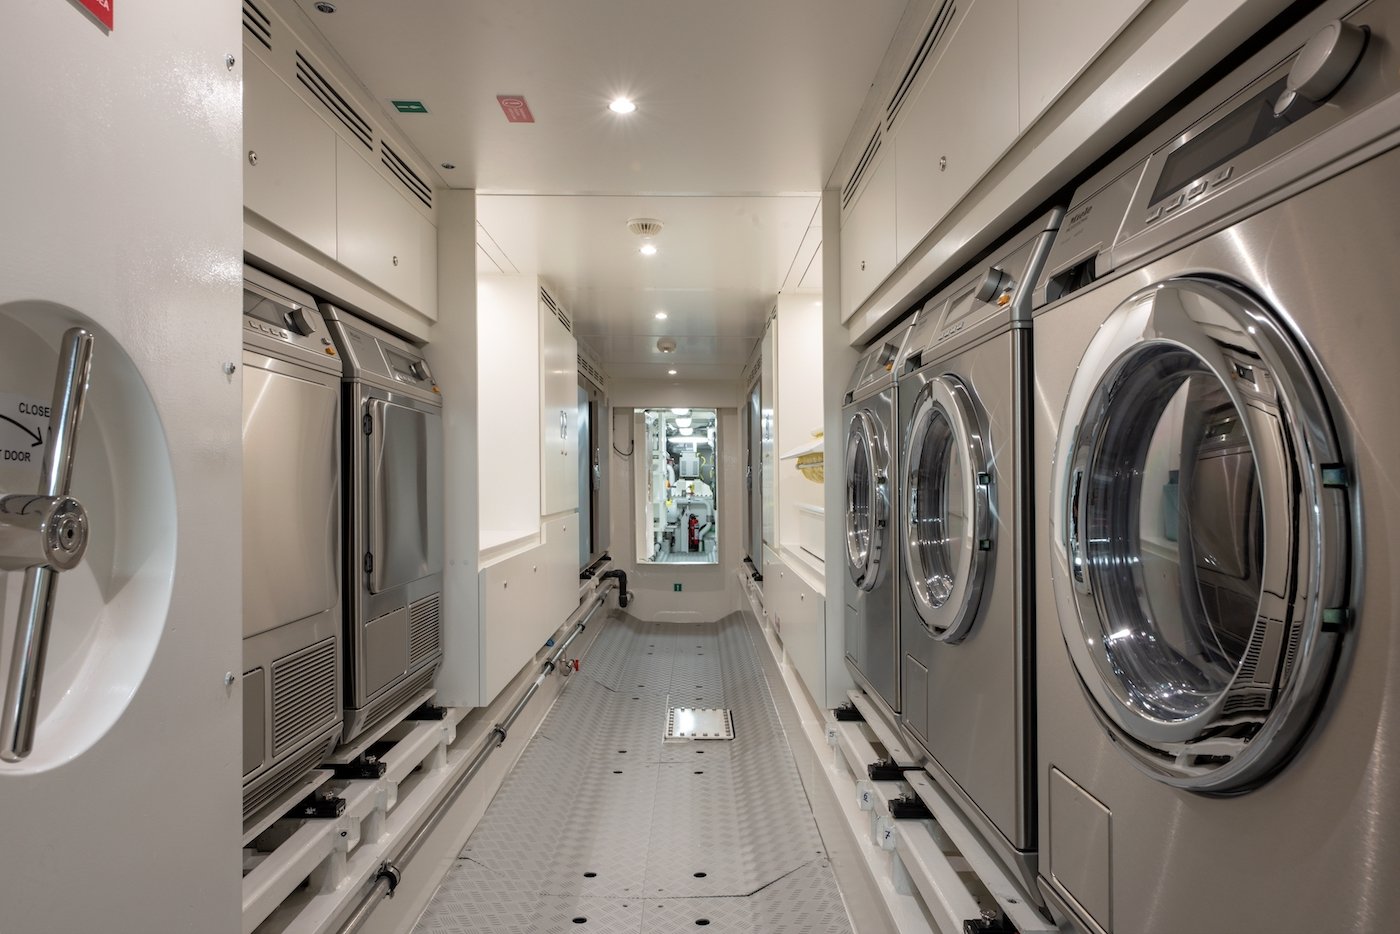 Utility Lower Deck Tunner Laundry Forward Area